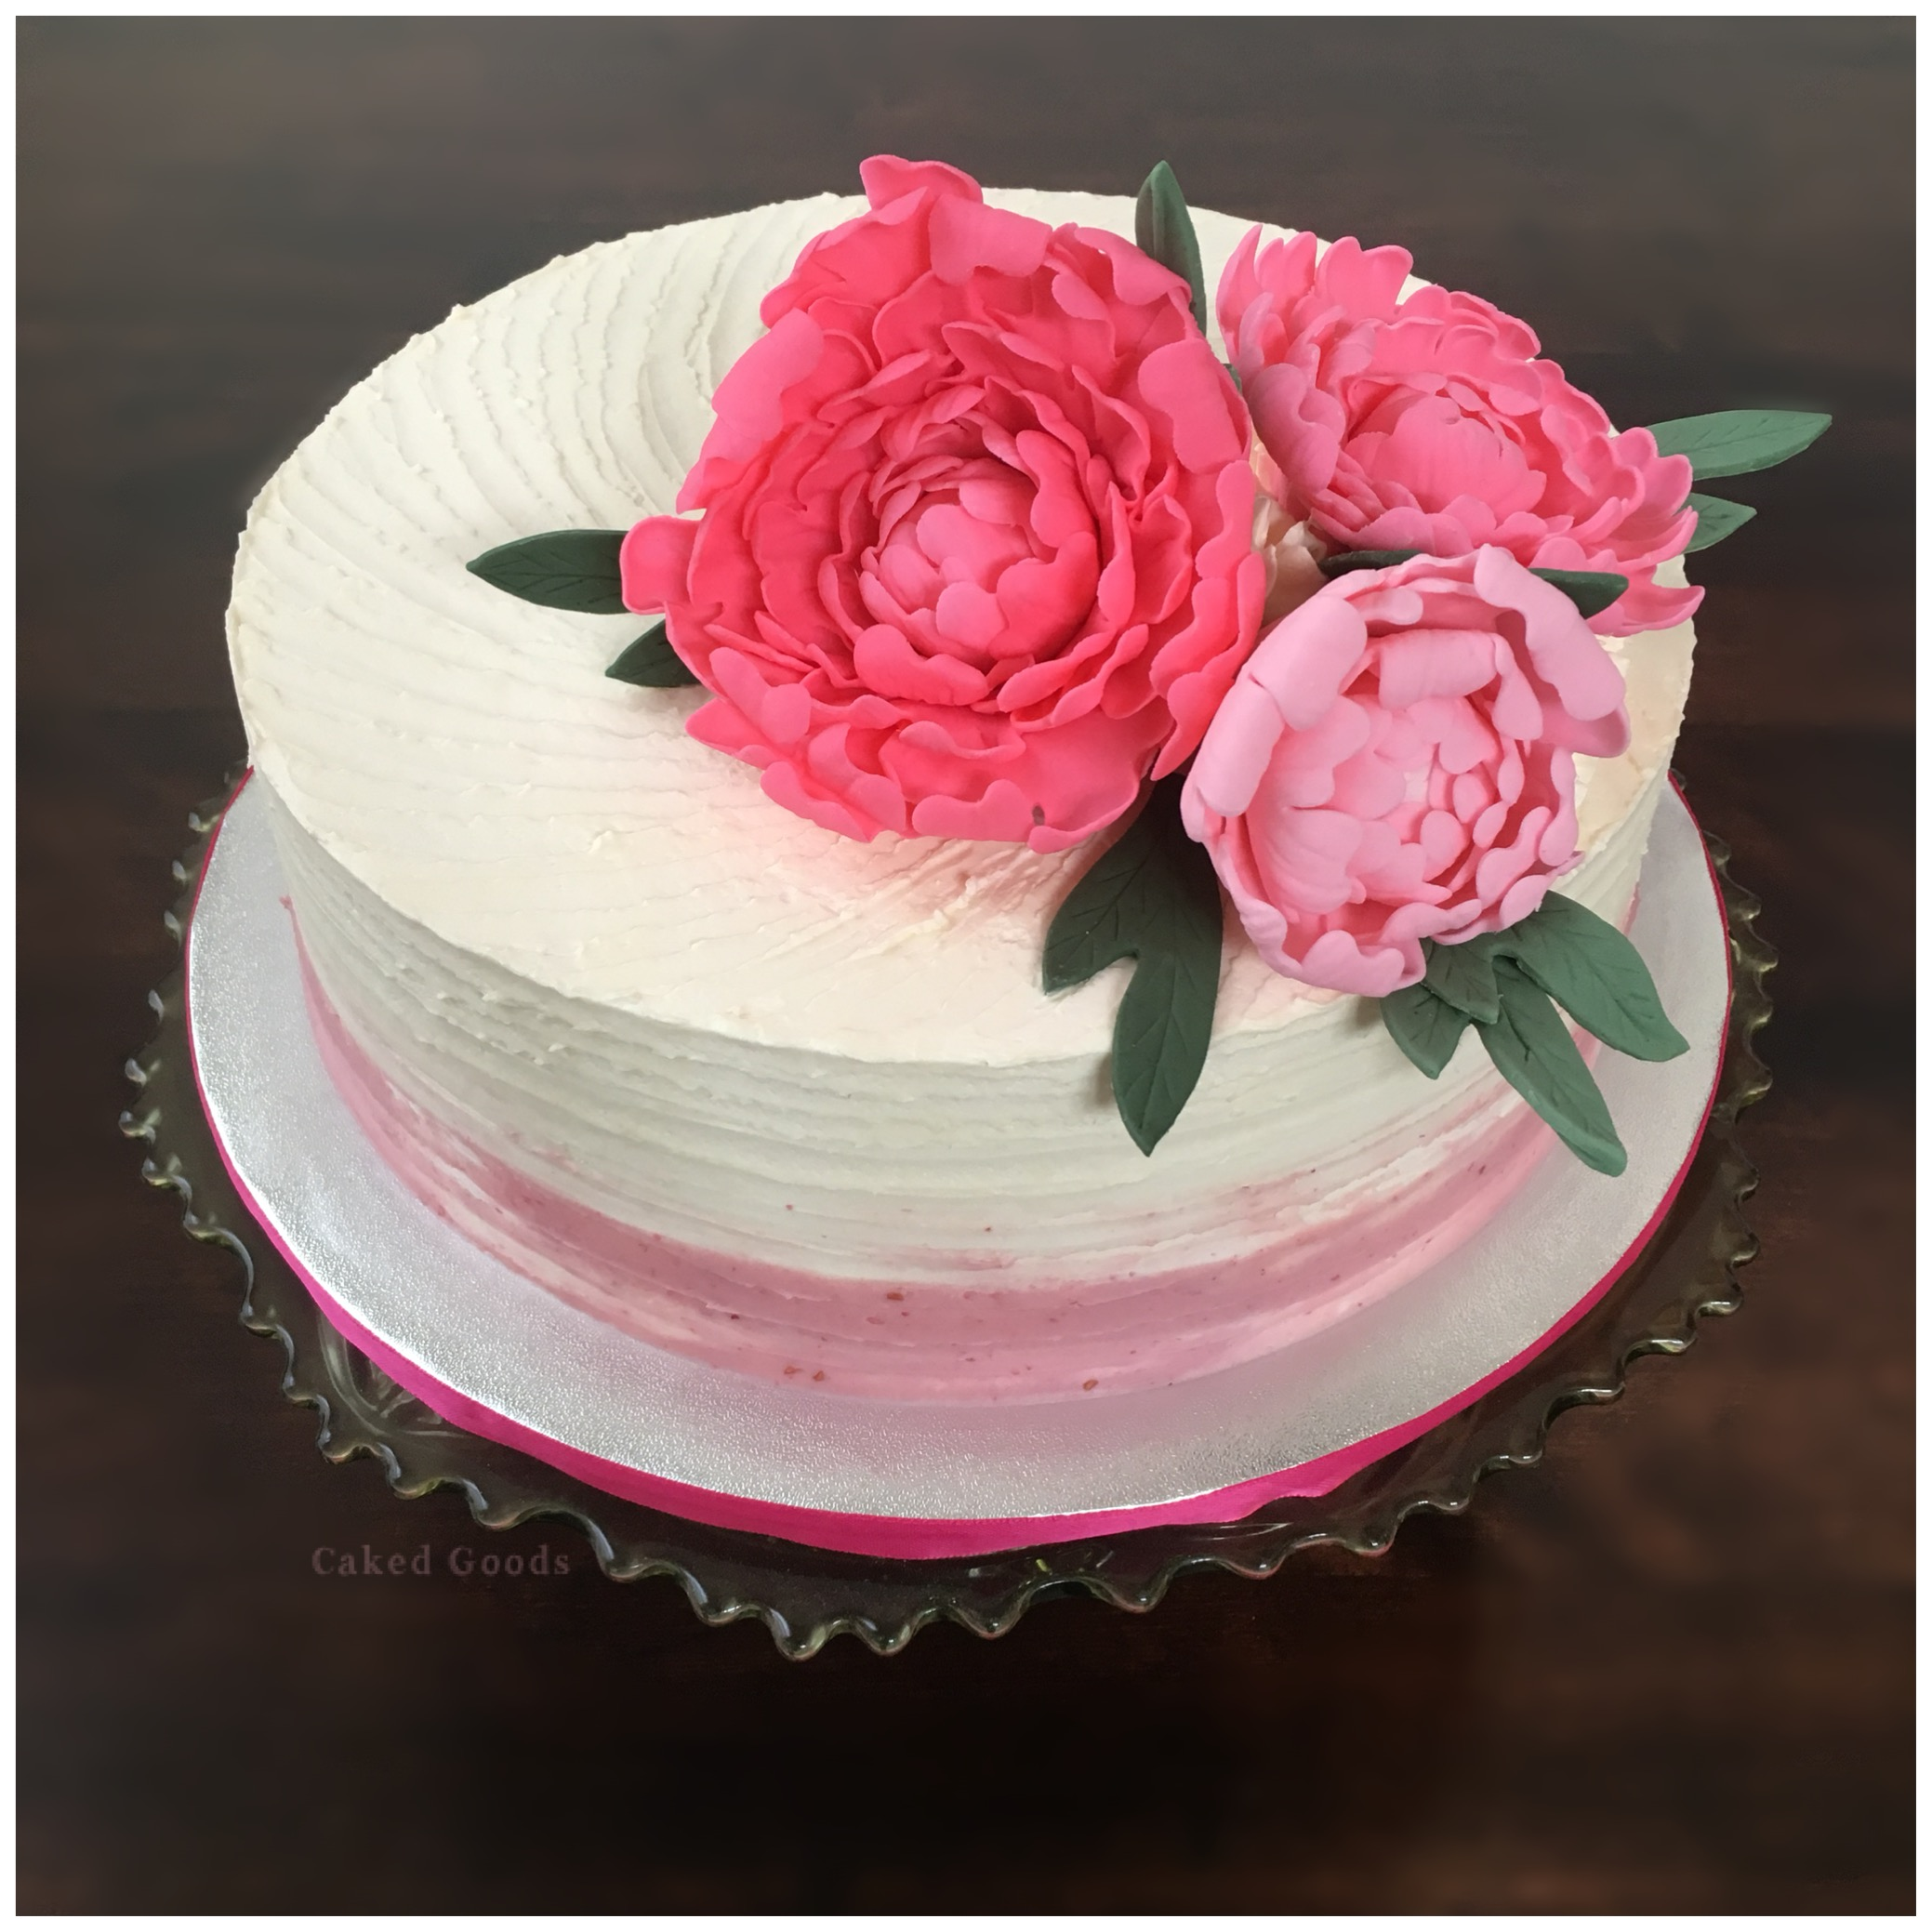 Three Peonies Cake